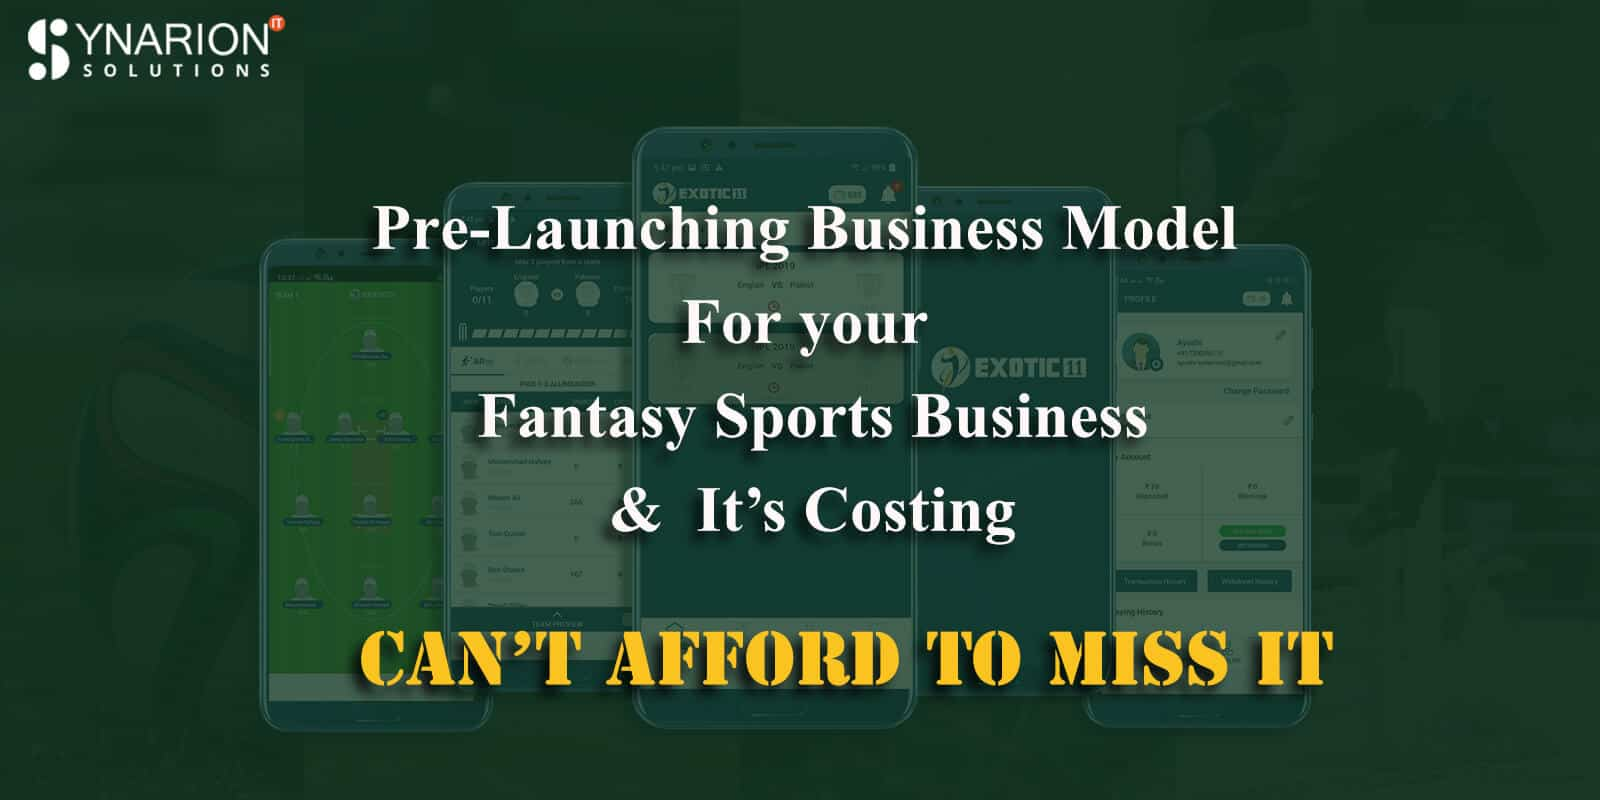 Pre-Launching Business Model for your Fantasy Sports Business and it's costing: Can't afford to miss it